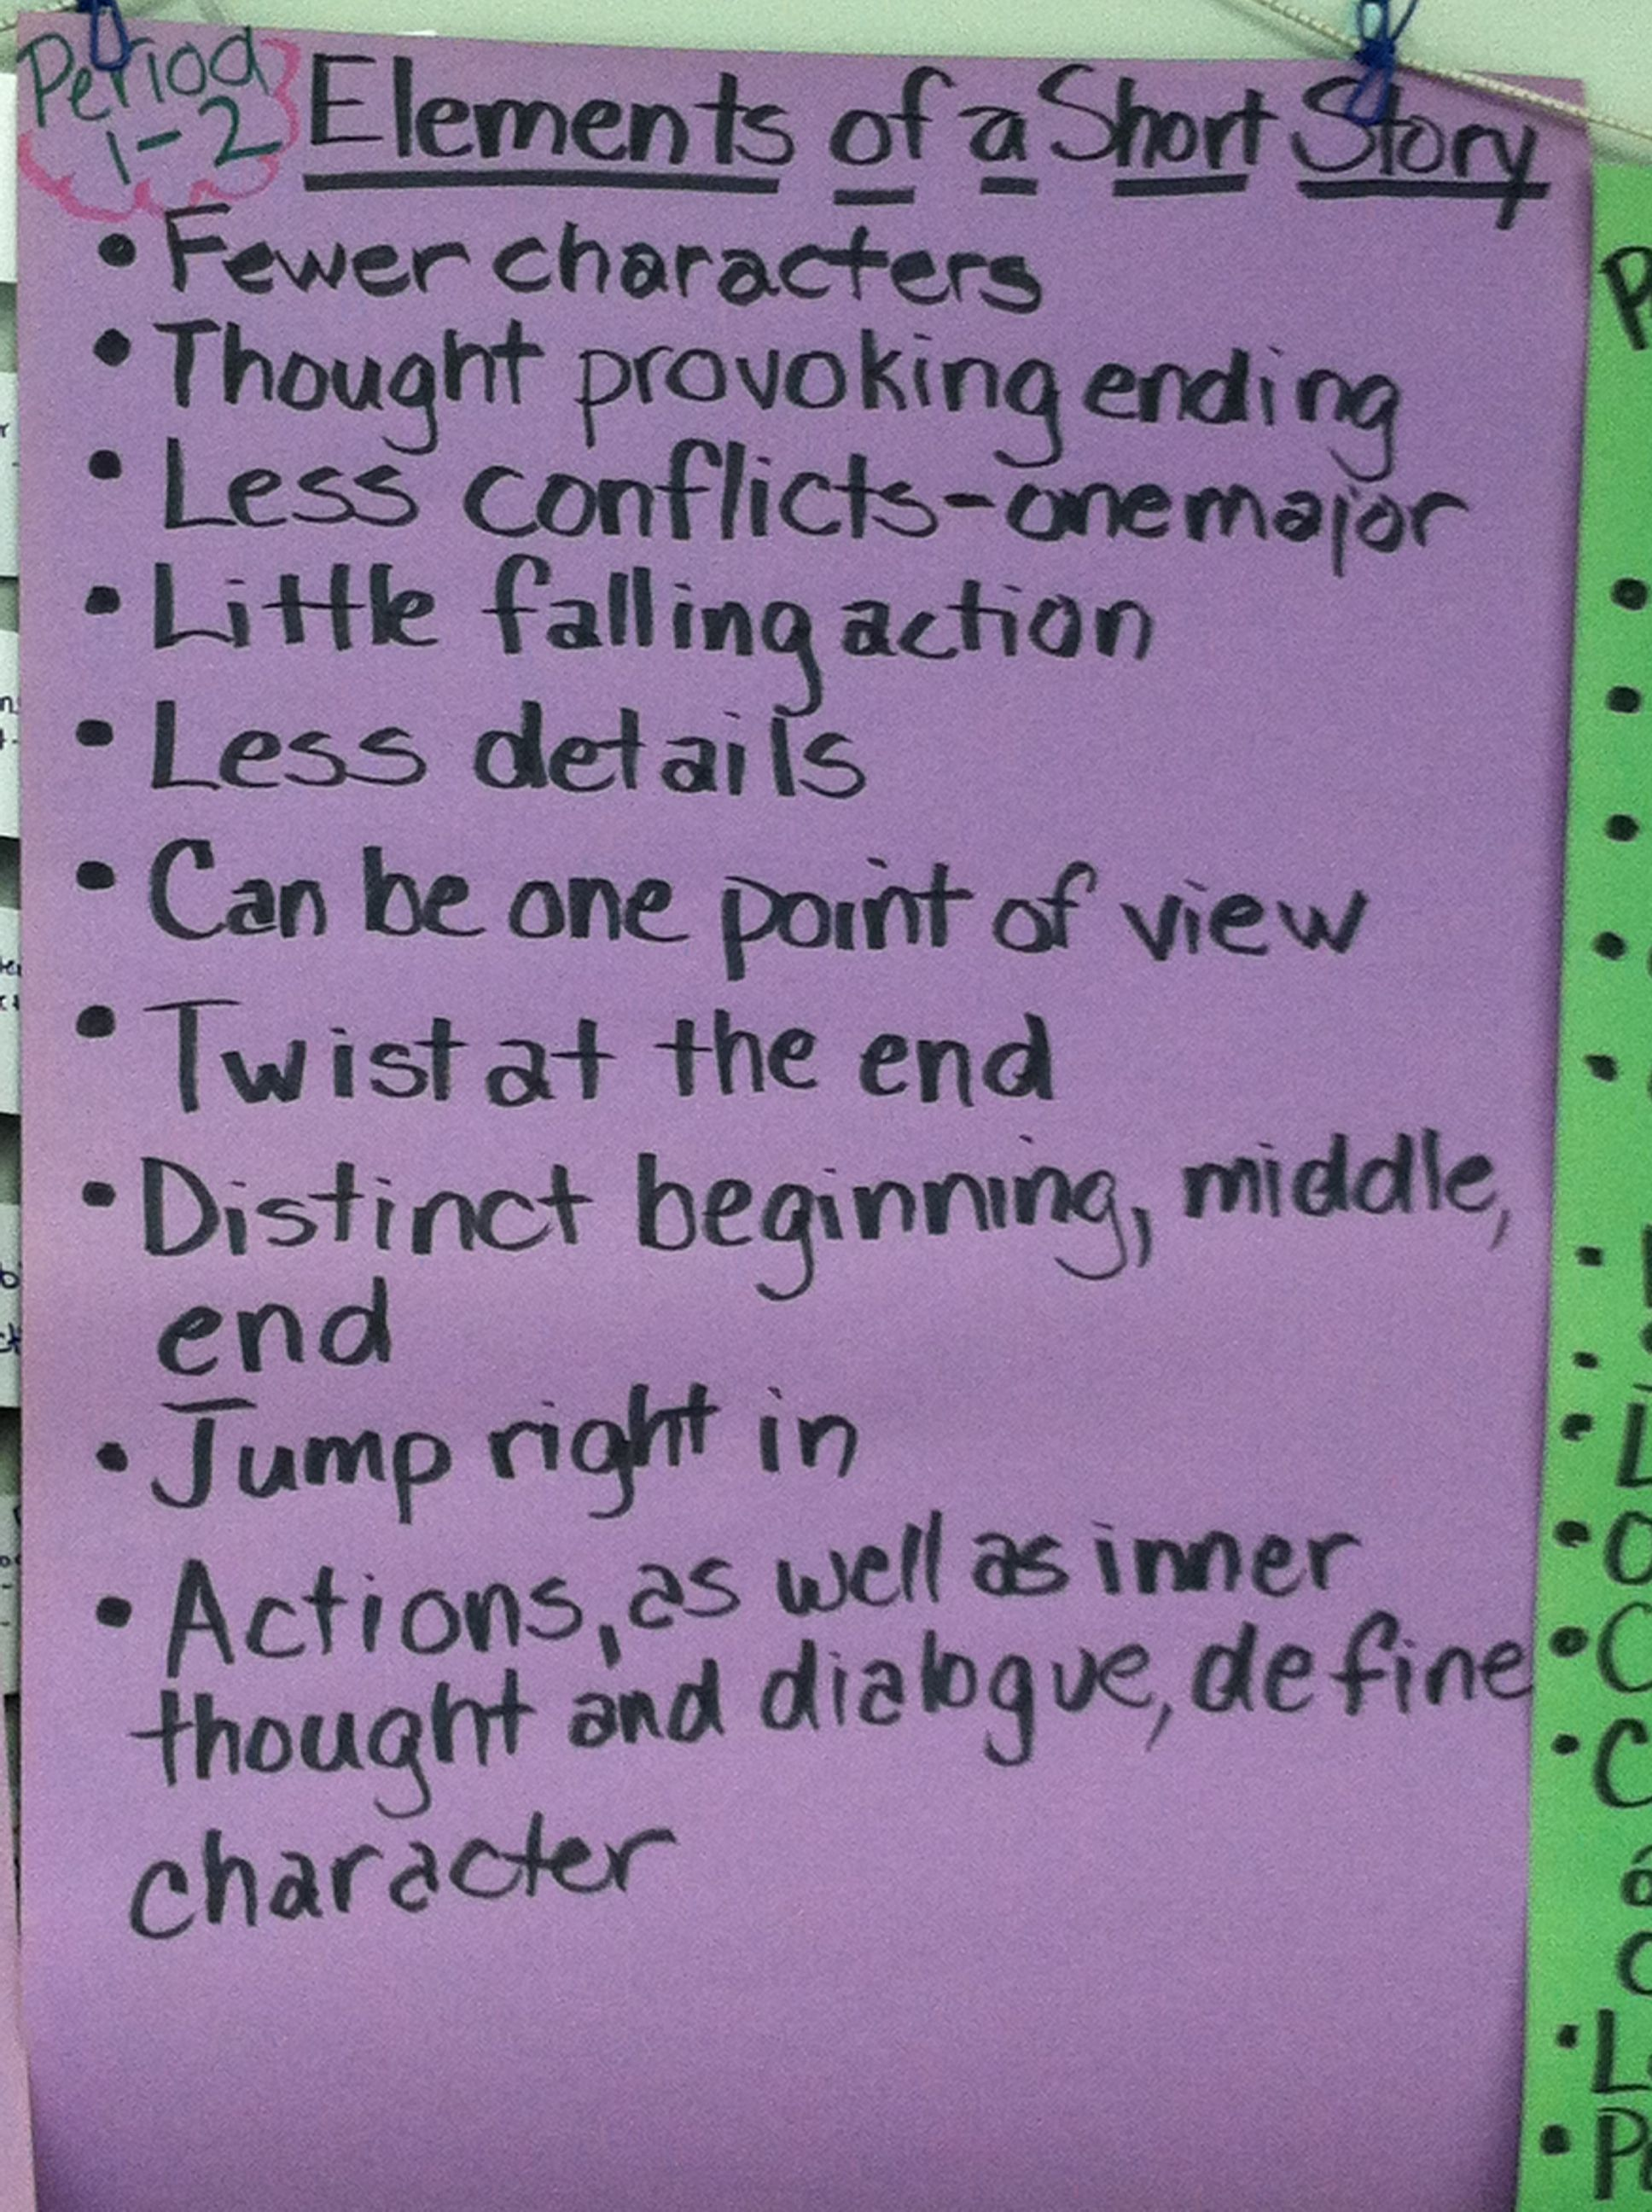 Elements Of A Short Story By Period1 2